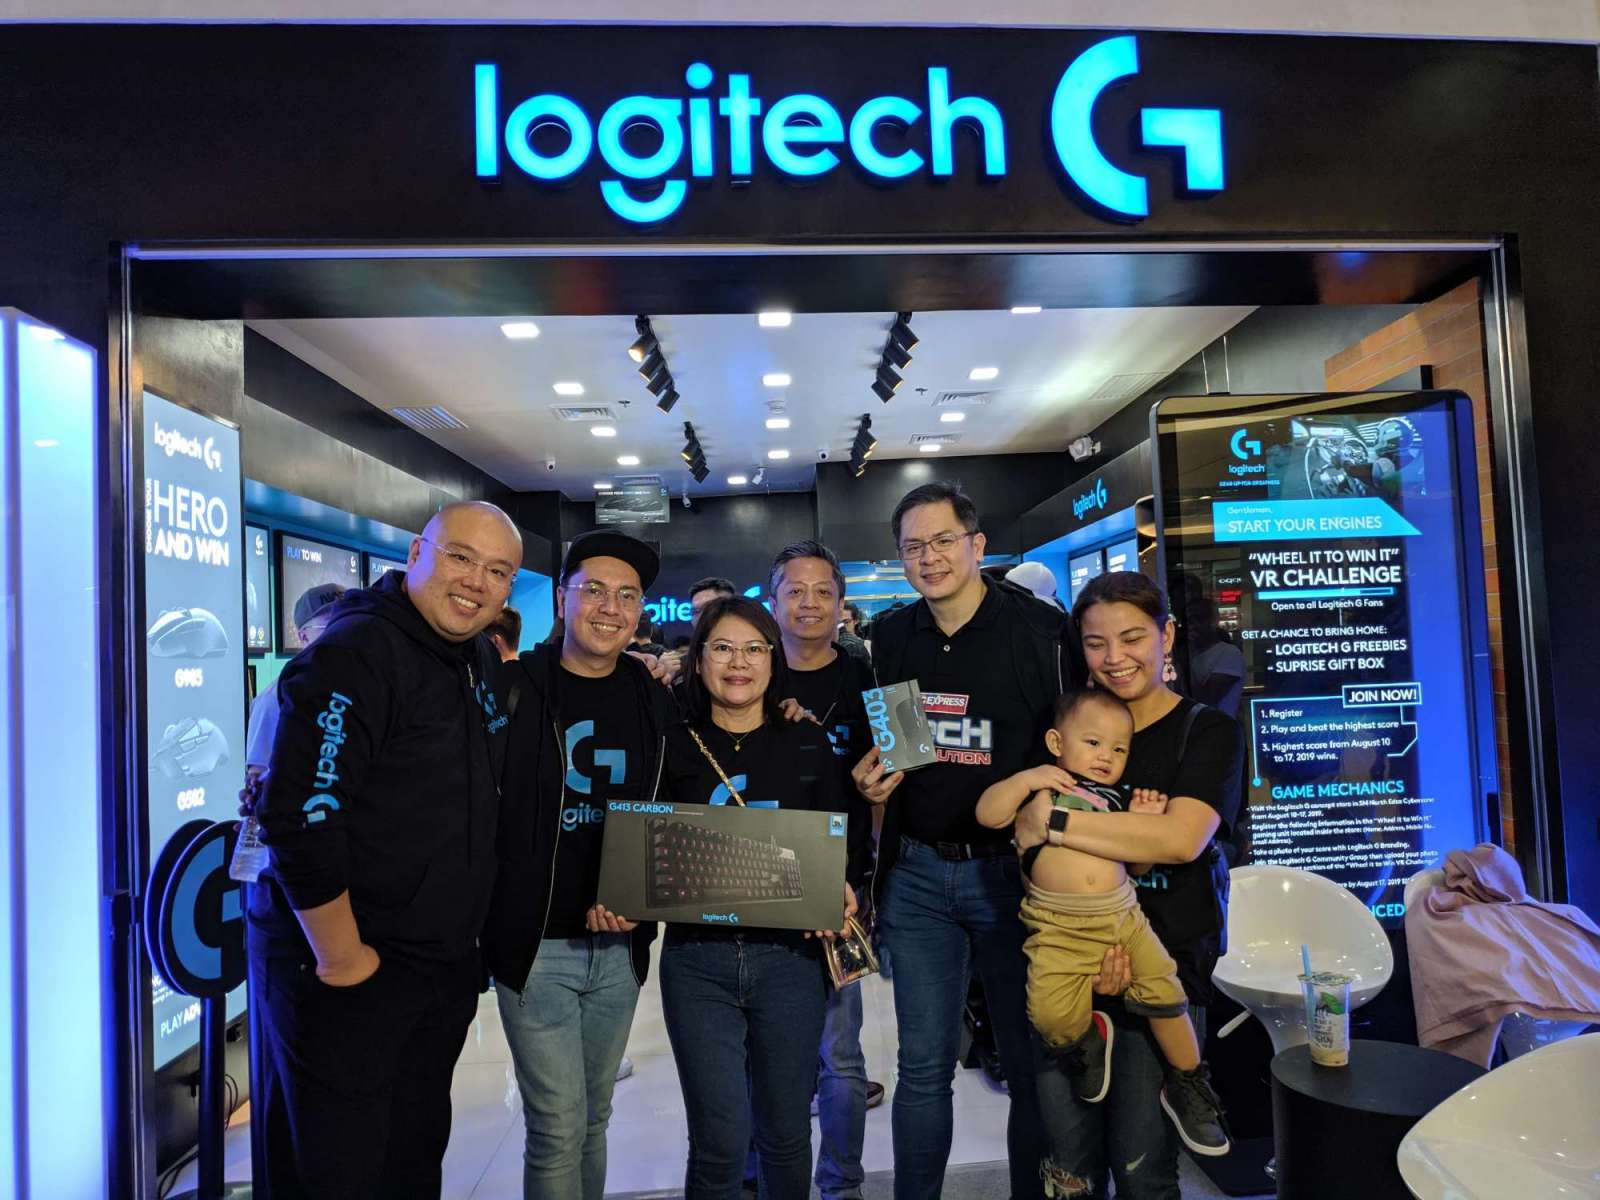 Logitech Philippines VP of Sales and Marketing Jesse Tan with fellow executives Thea Cornelio, Bernard Chow, Marlon Ballelos, Jarmine Borja, Sharleen Suarez, and Ice Santos - Logitech G Concept Store - Cyberzone SM North EDSA Annex, Quezon City, Philippines